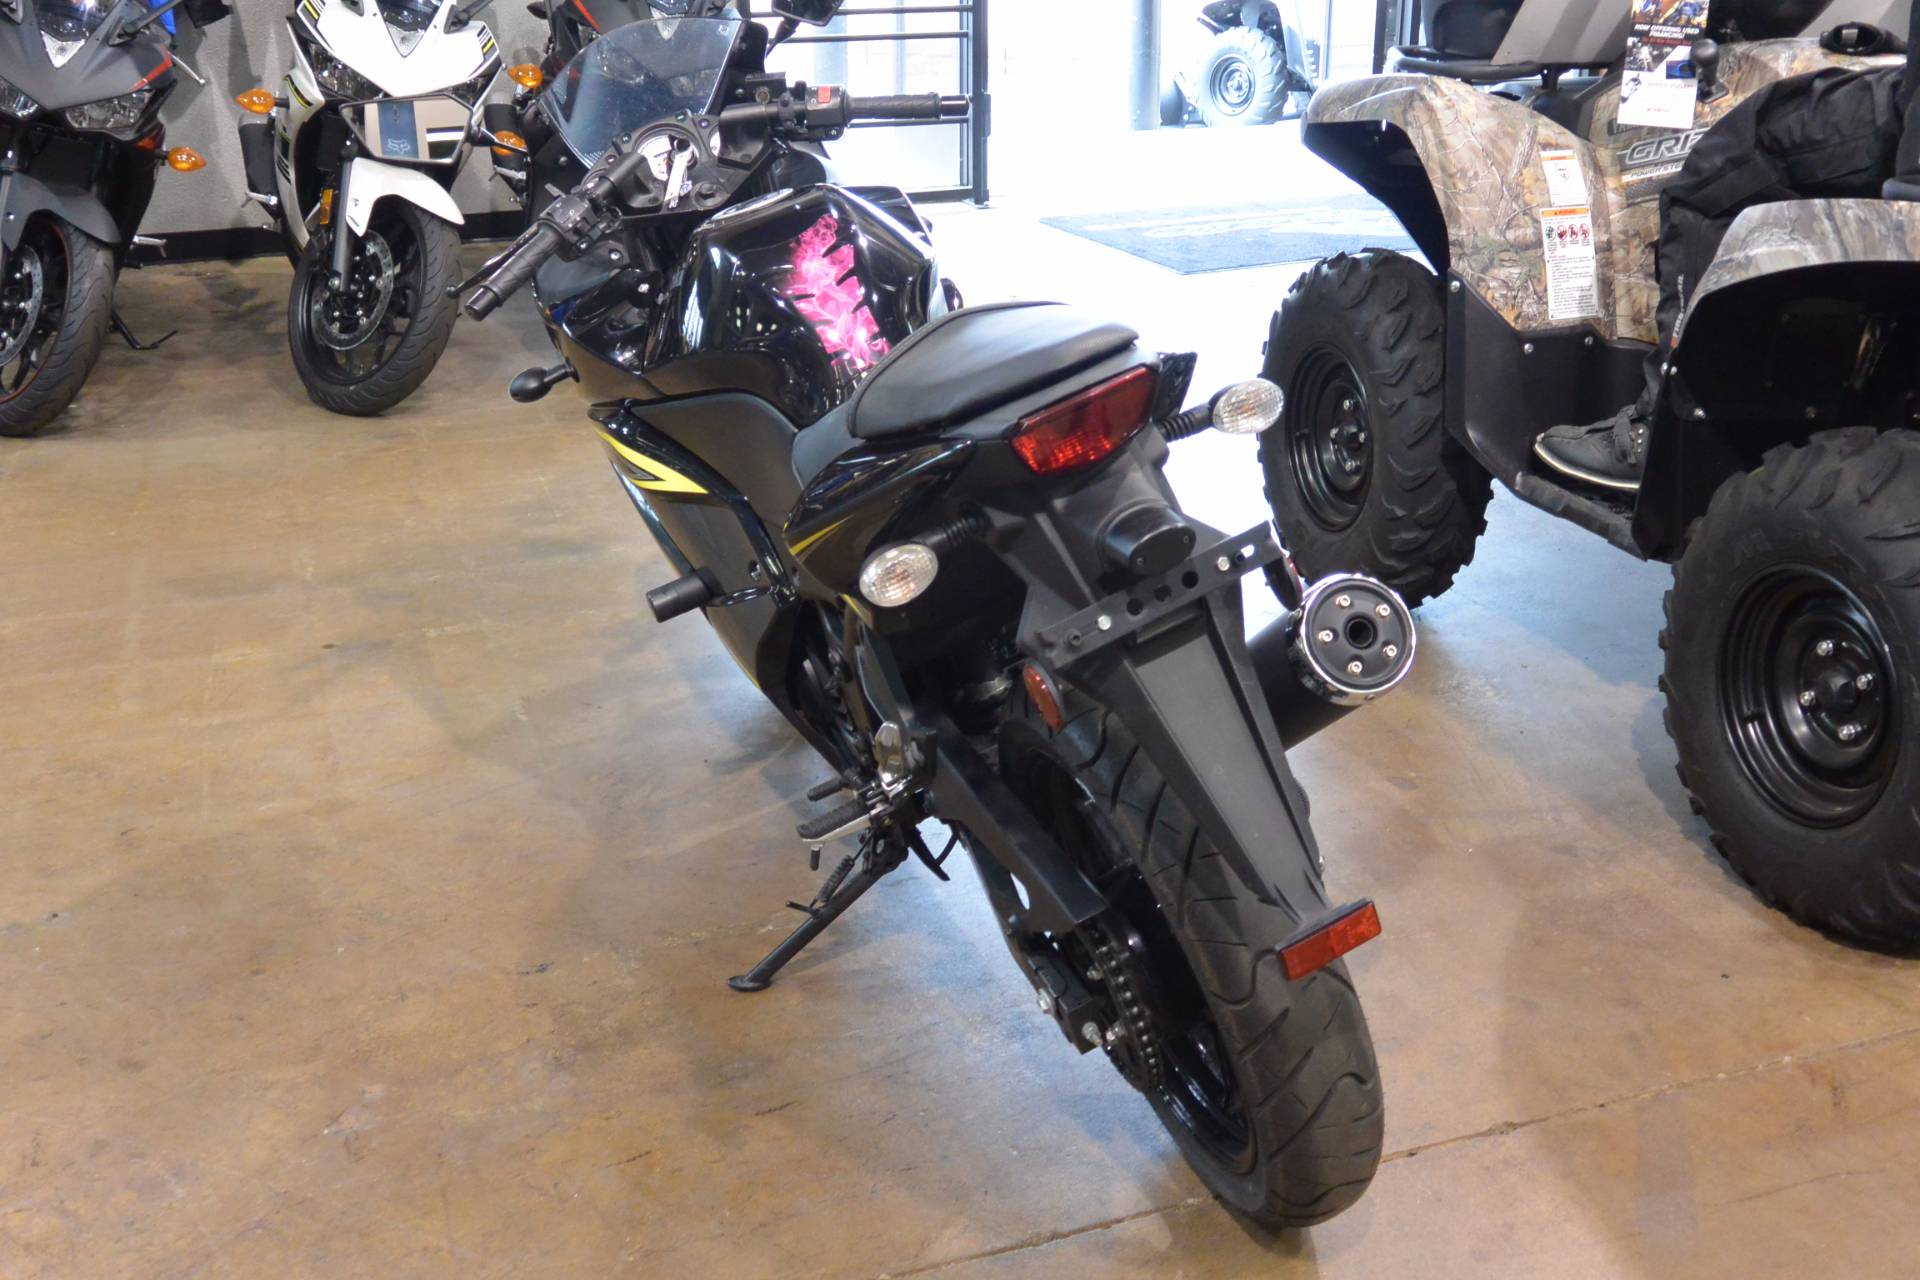 2012 Kawasaki EX250JCFA in Denver, Colorado